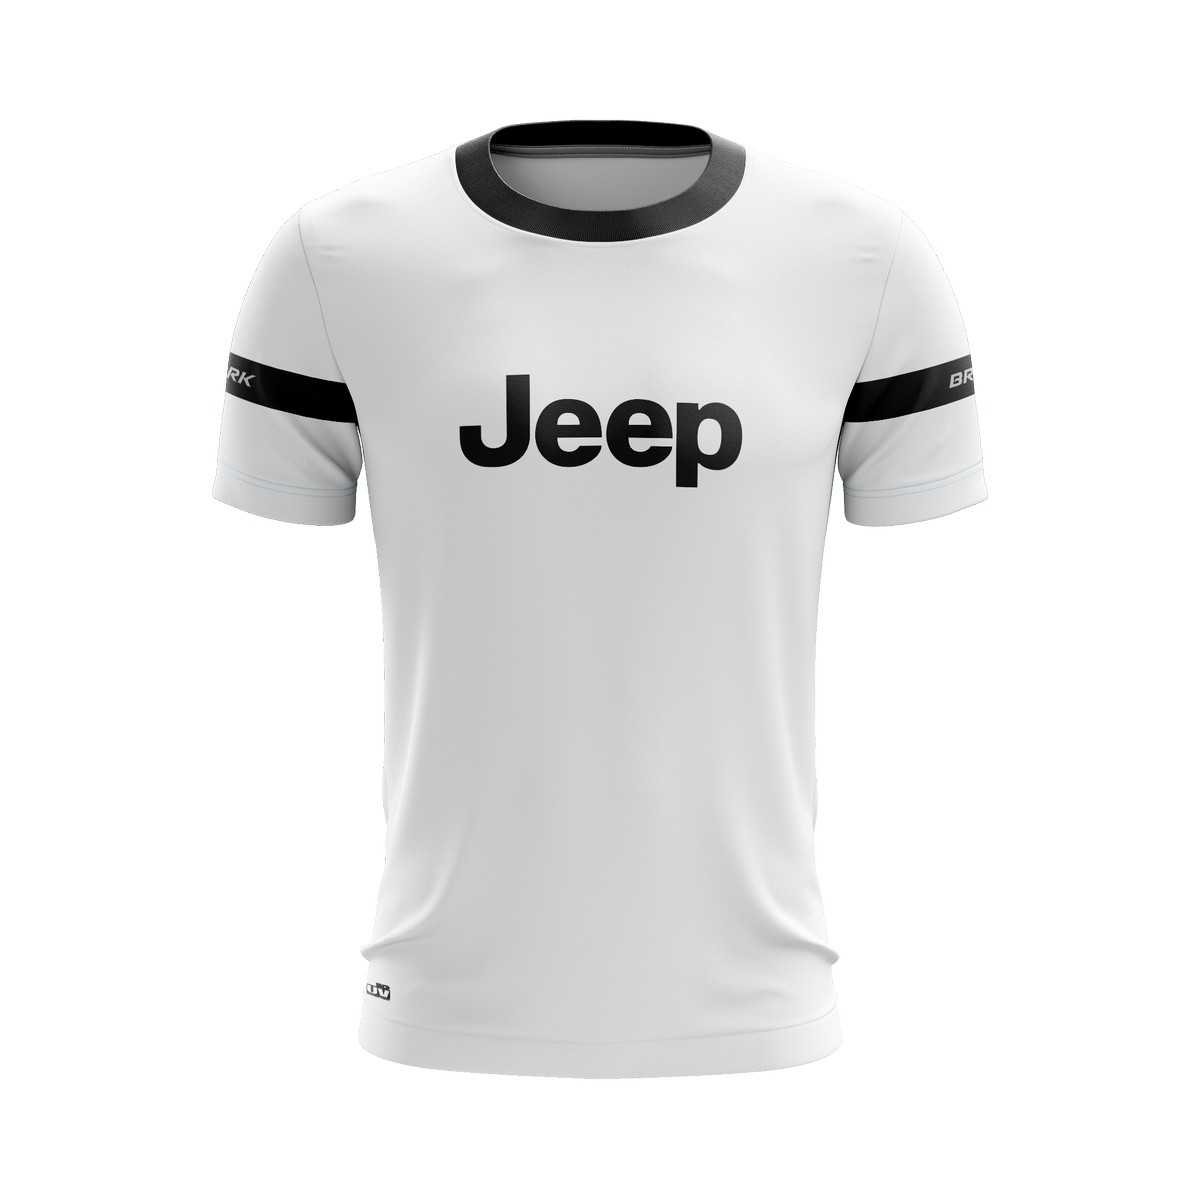 Camiseta Jeep Casual 01 Brk Off Road Tecido Dry